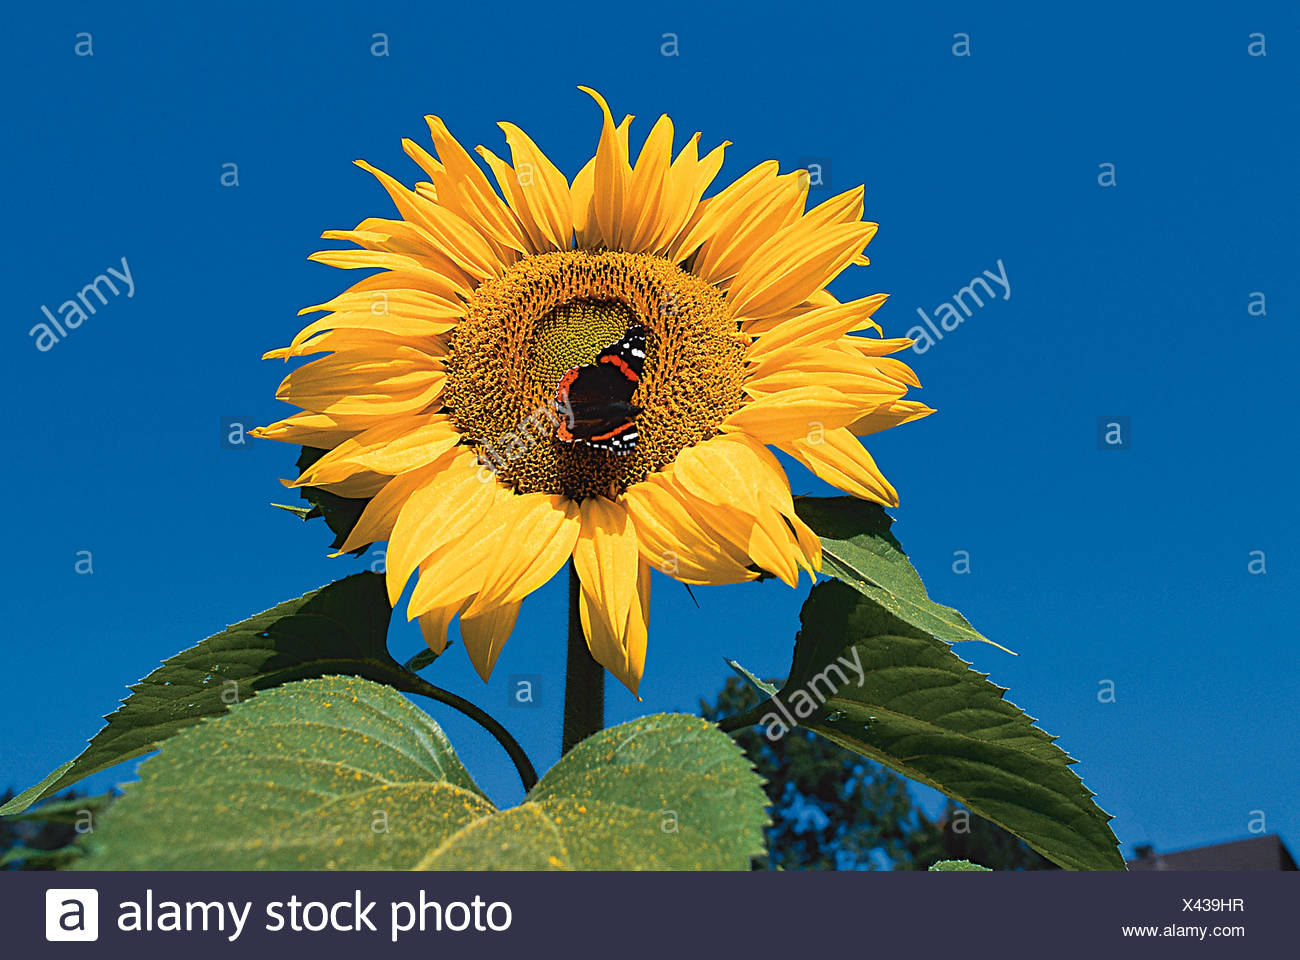 Sunflower with Butterlfy - Stock Image